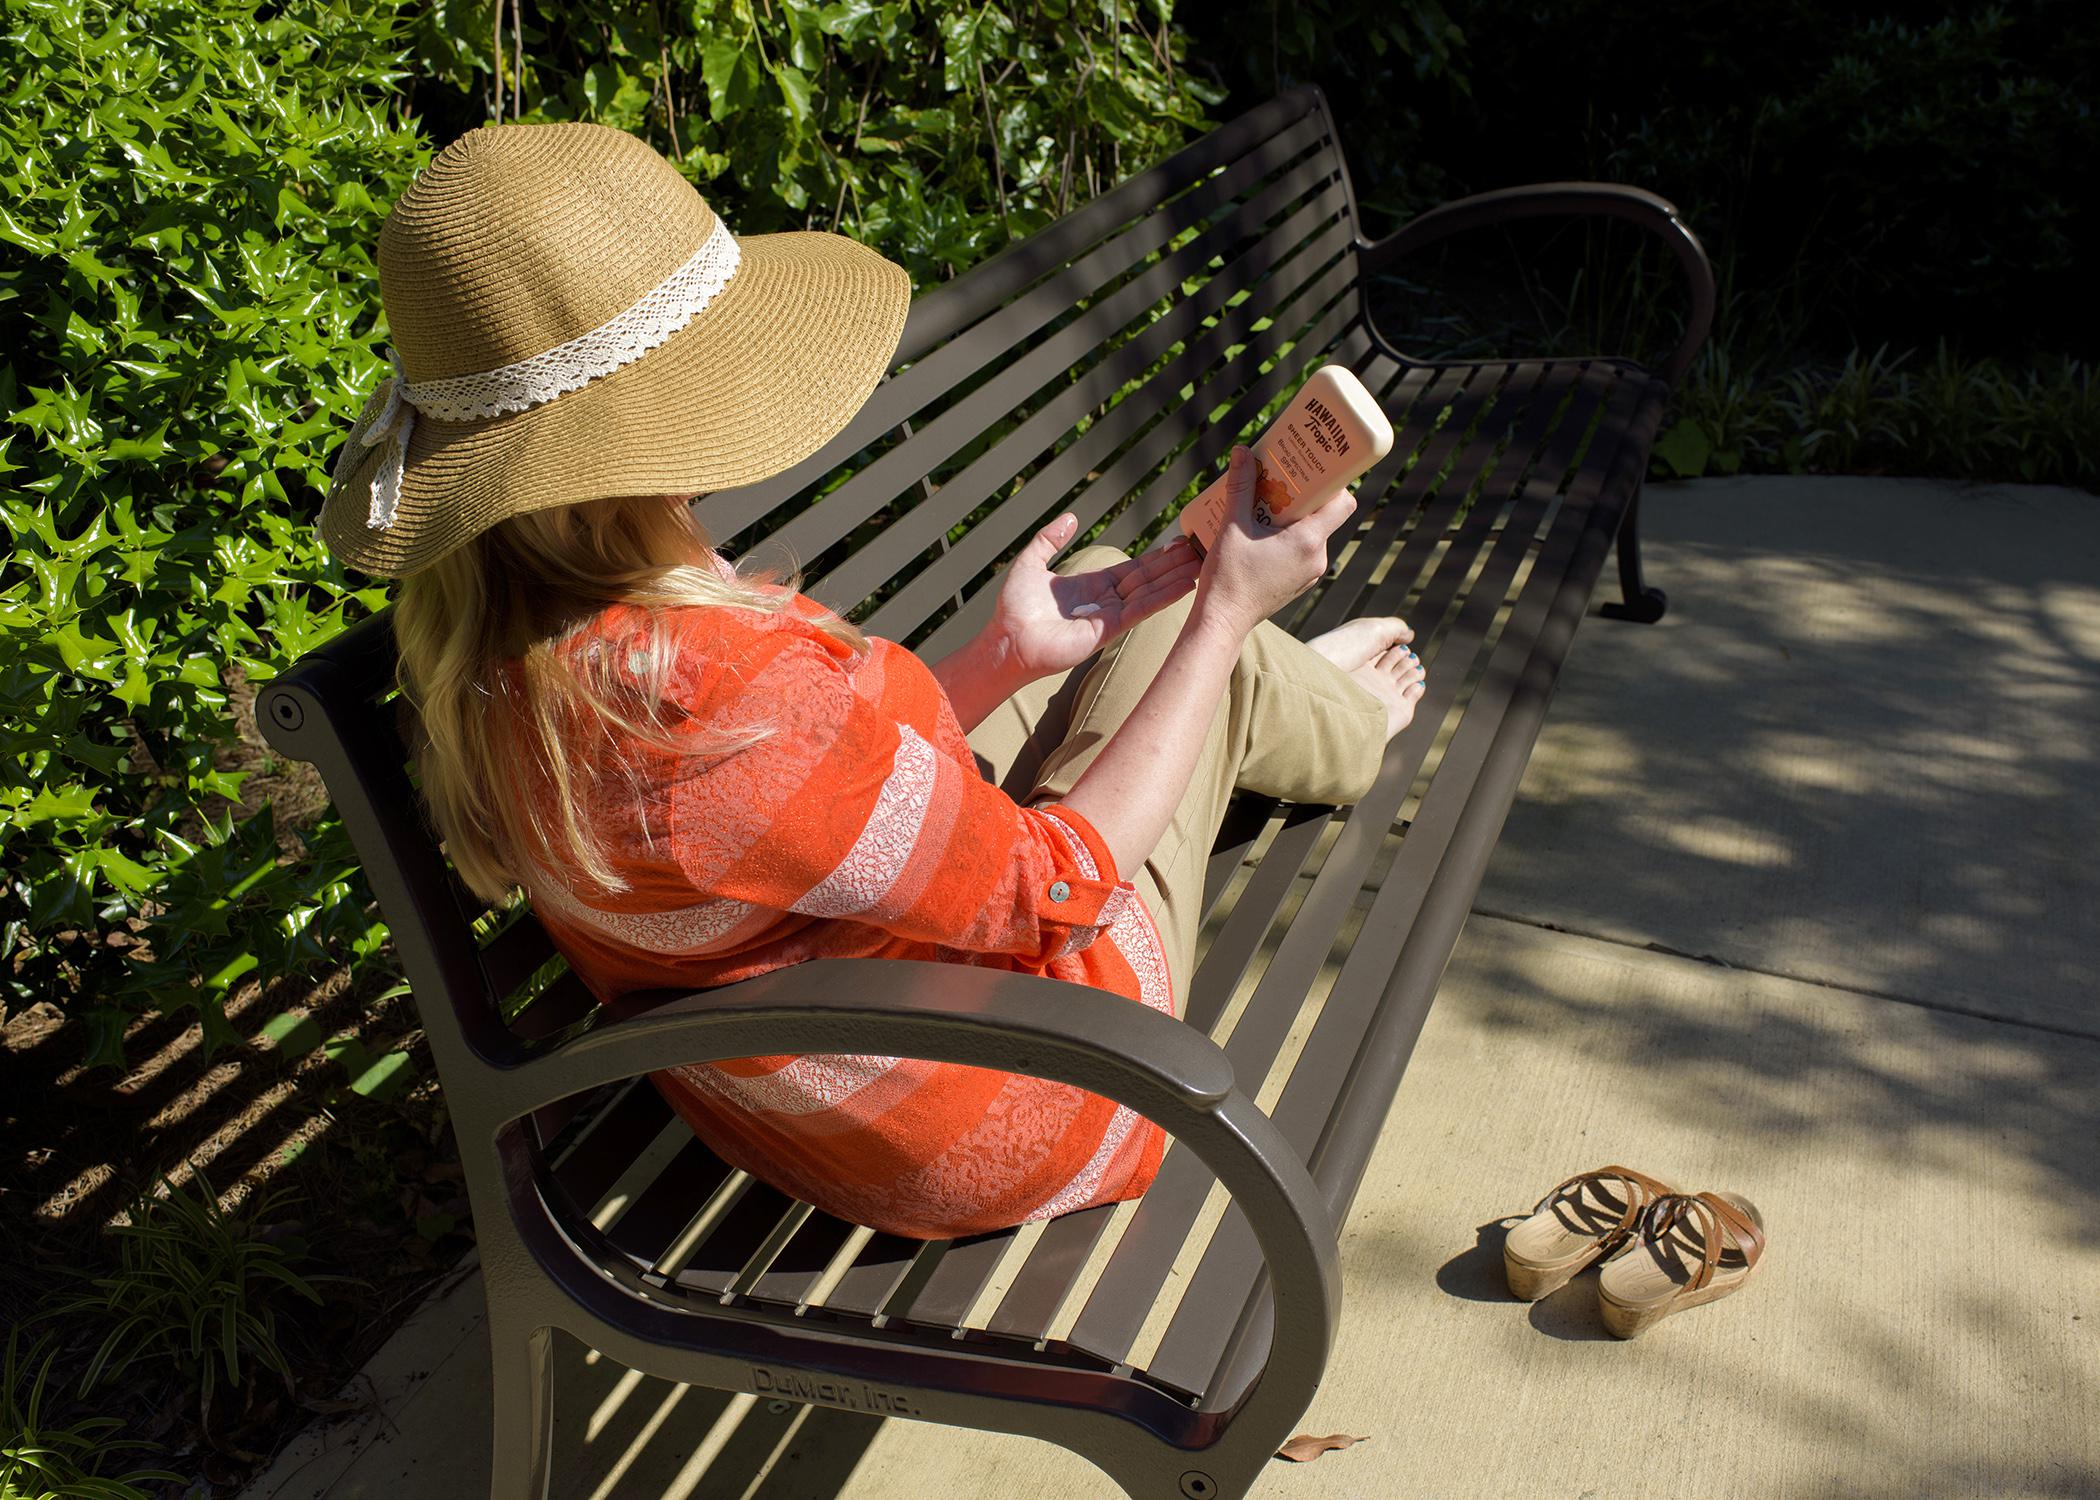 Take proper precautions, such as wearing a wide-brimmed hat and applying sunscreen, to protect skin from sun damage and help prevent skin cancer. (Photo by MSU Ag Communications/Kevin Hudson)